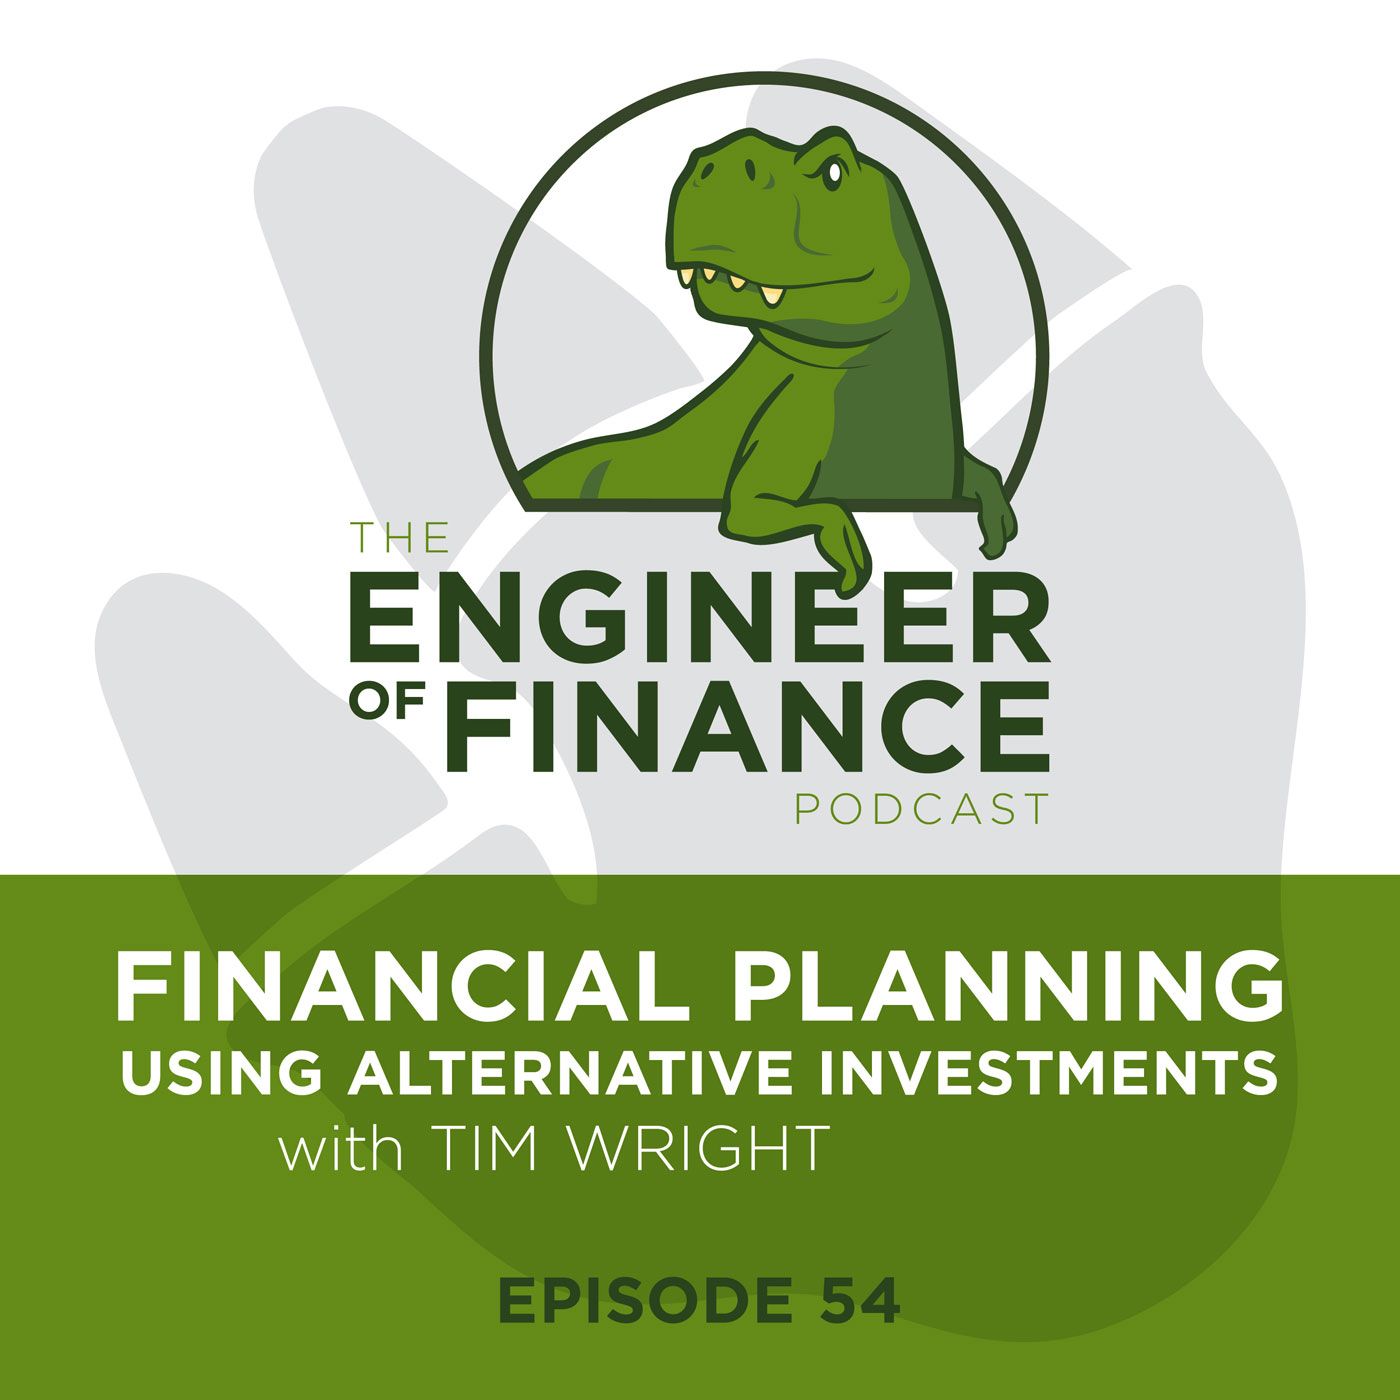 Financial Planning Using Alternative Investments with Tim Wright – Episode 54